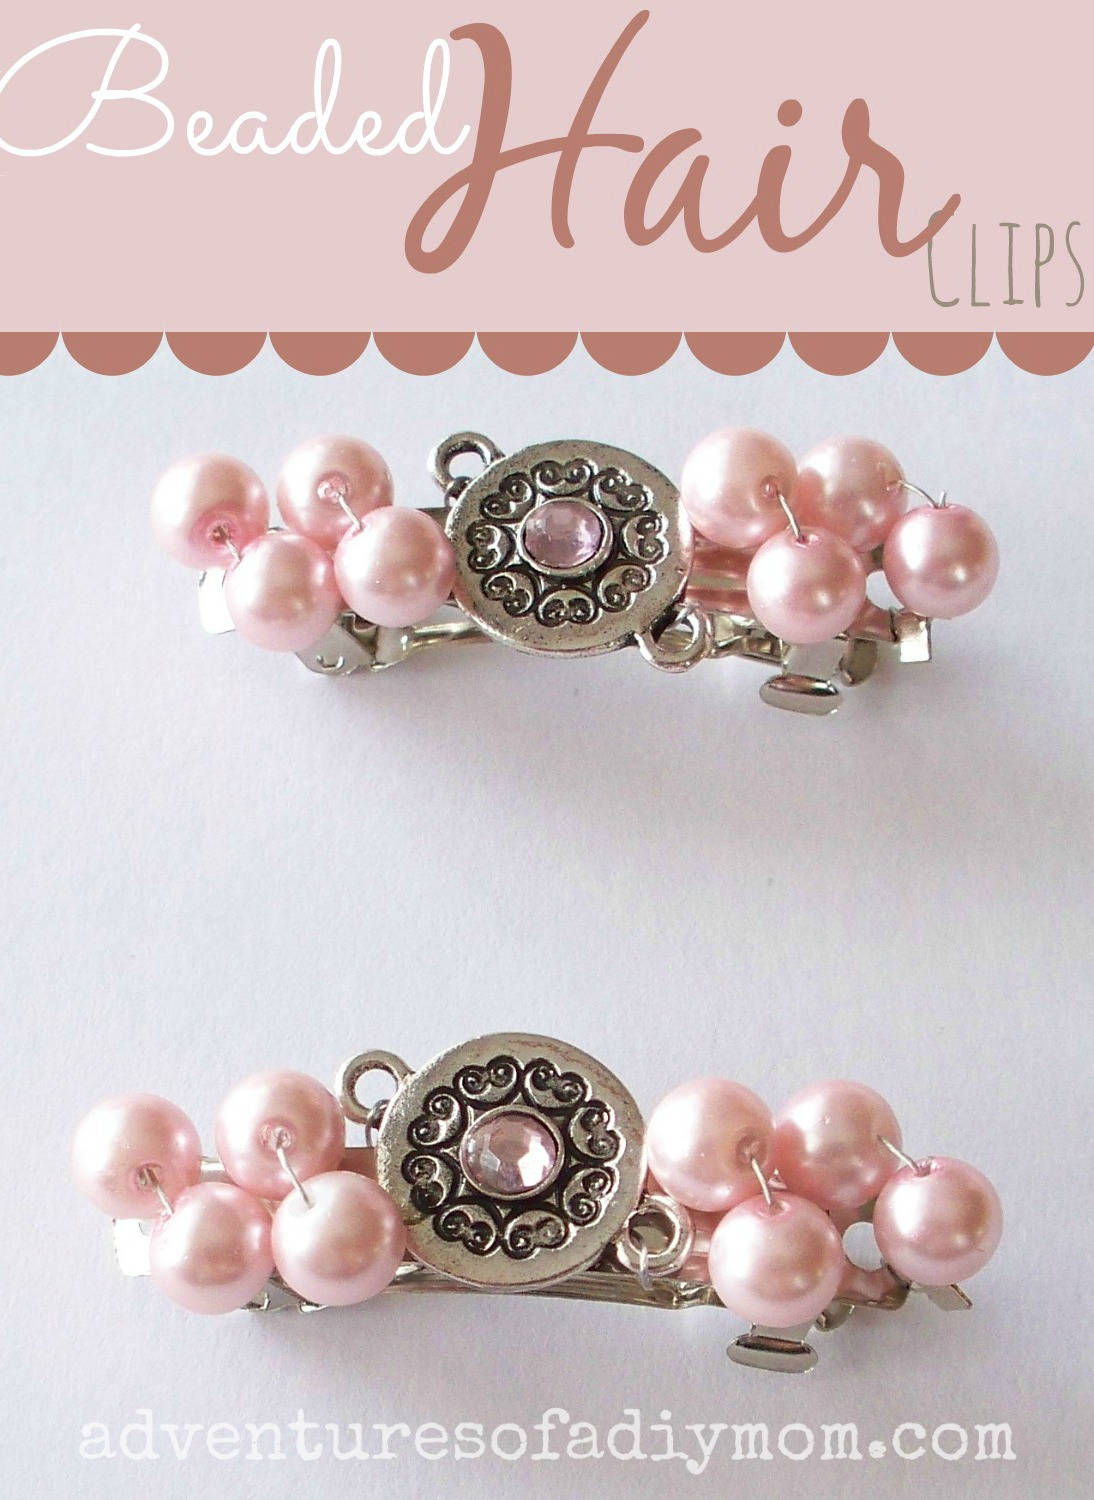 How to Make Beaded Hair Clips